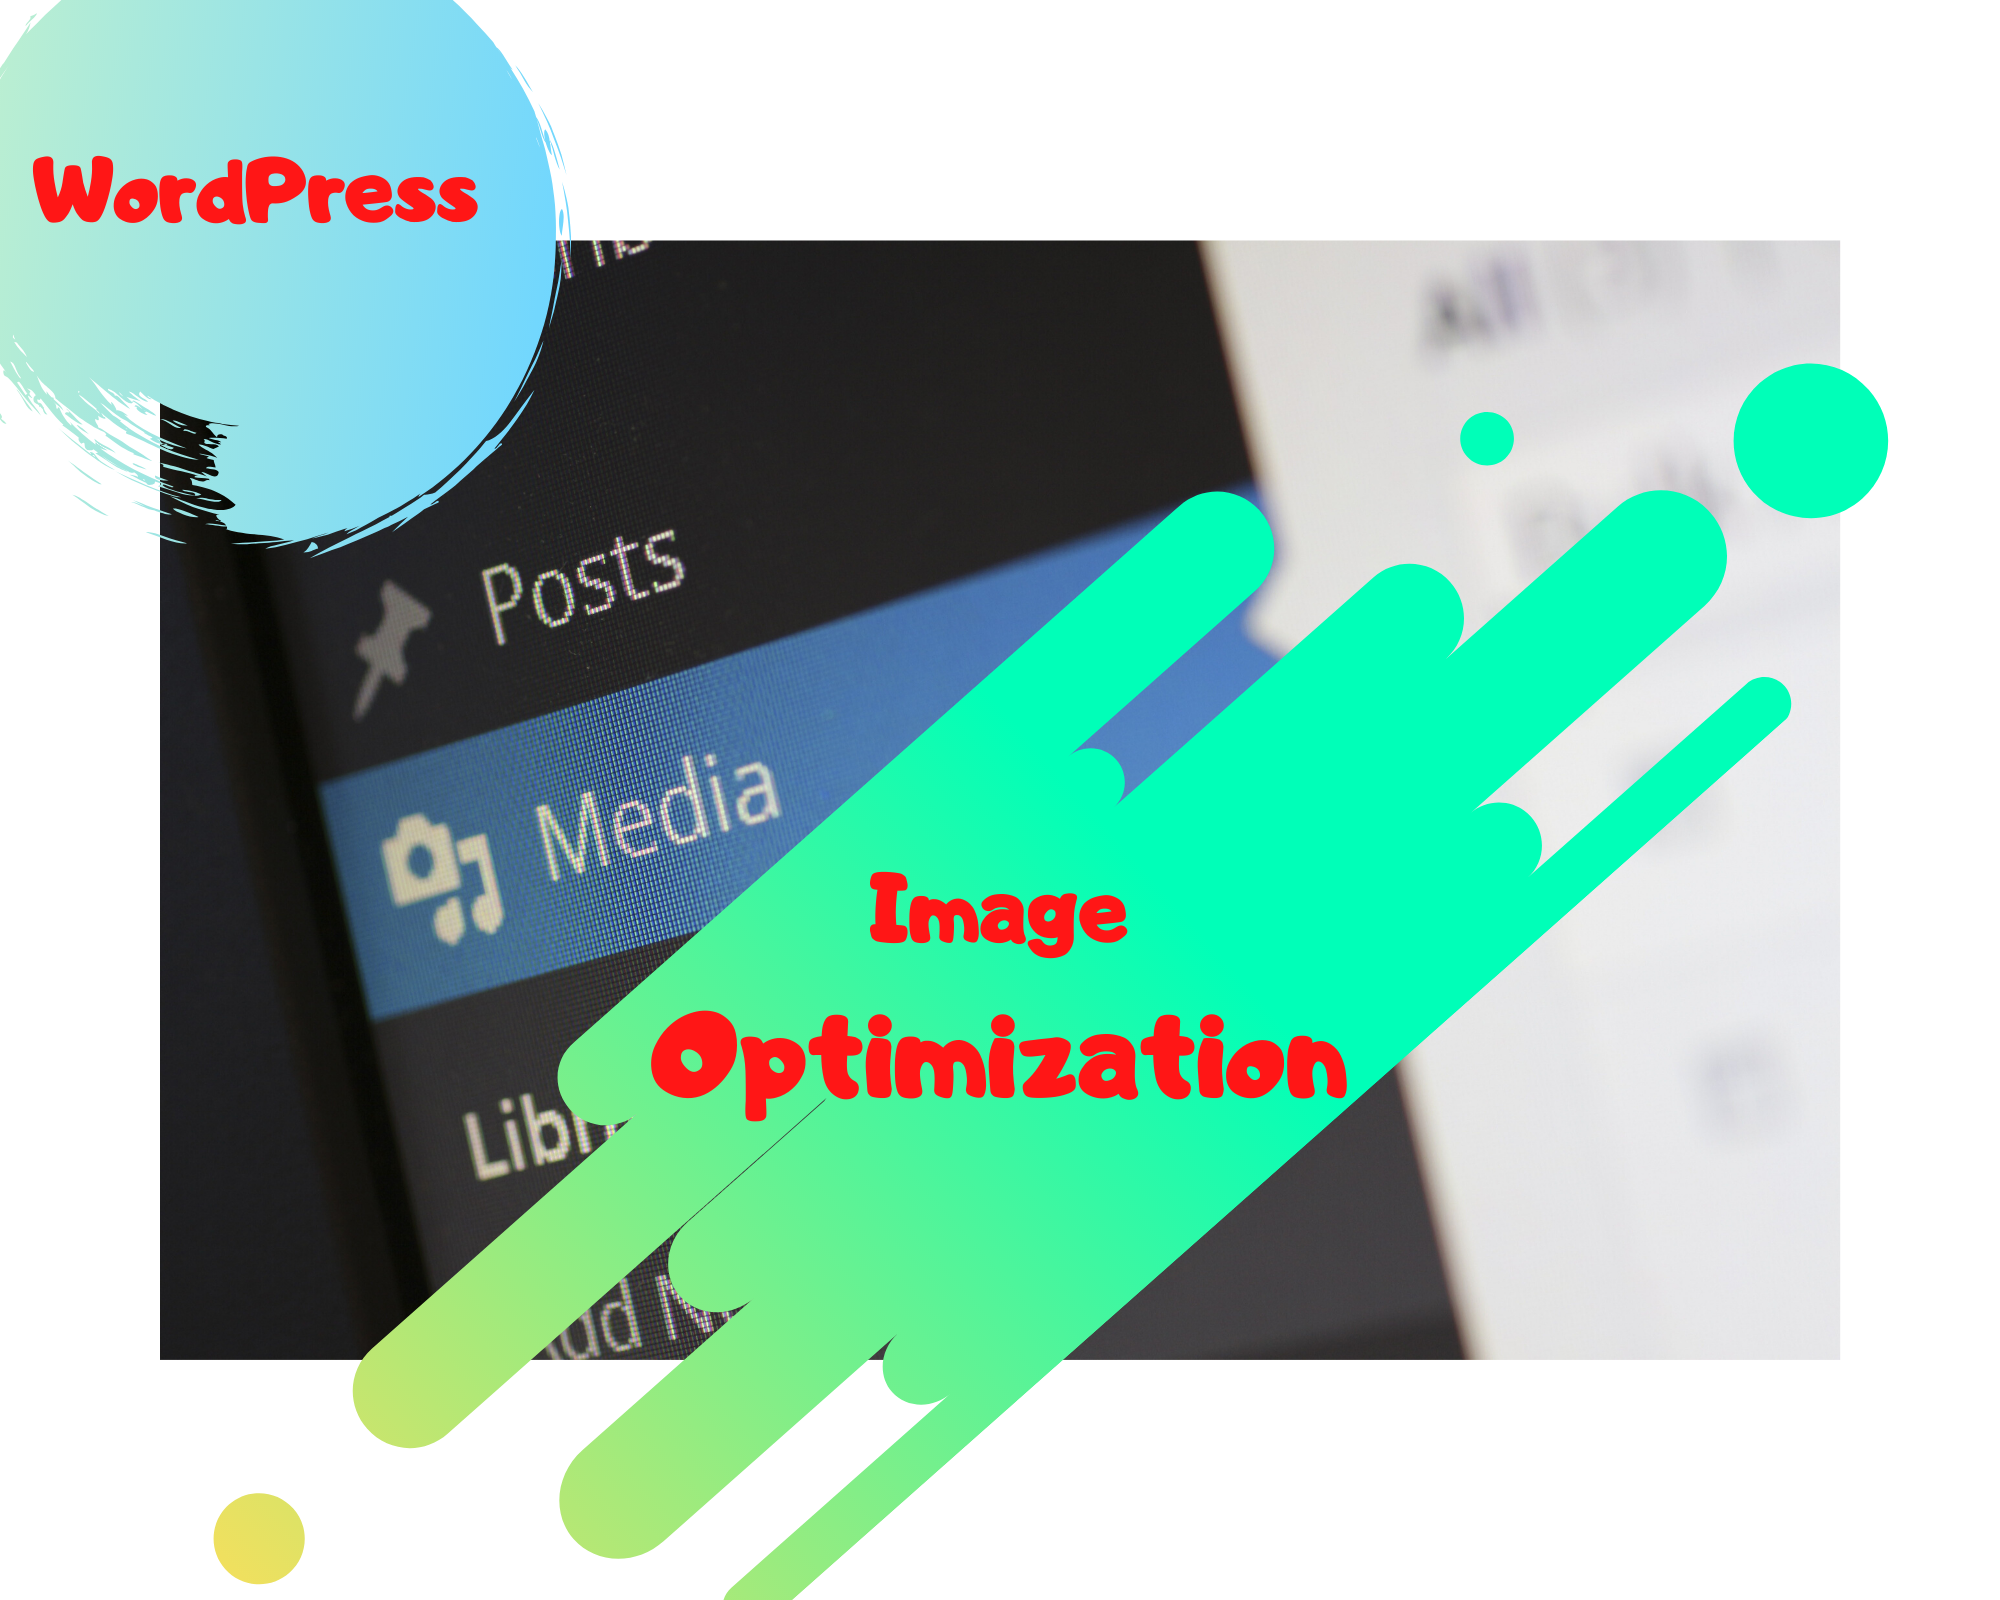 Image Optimization worpdress plugin